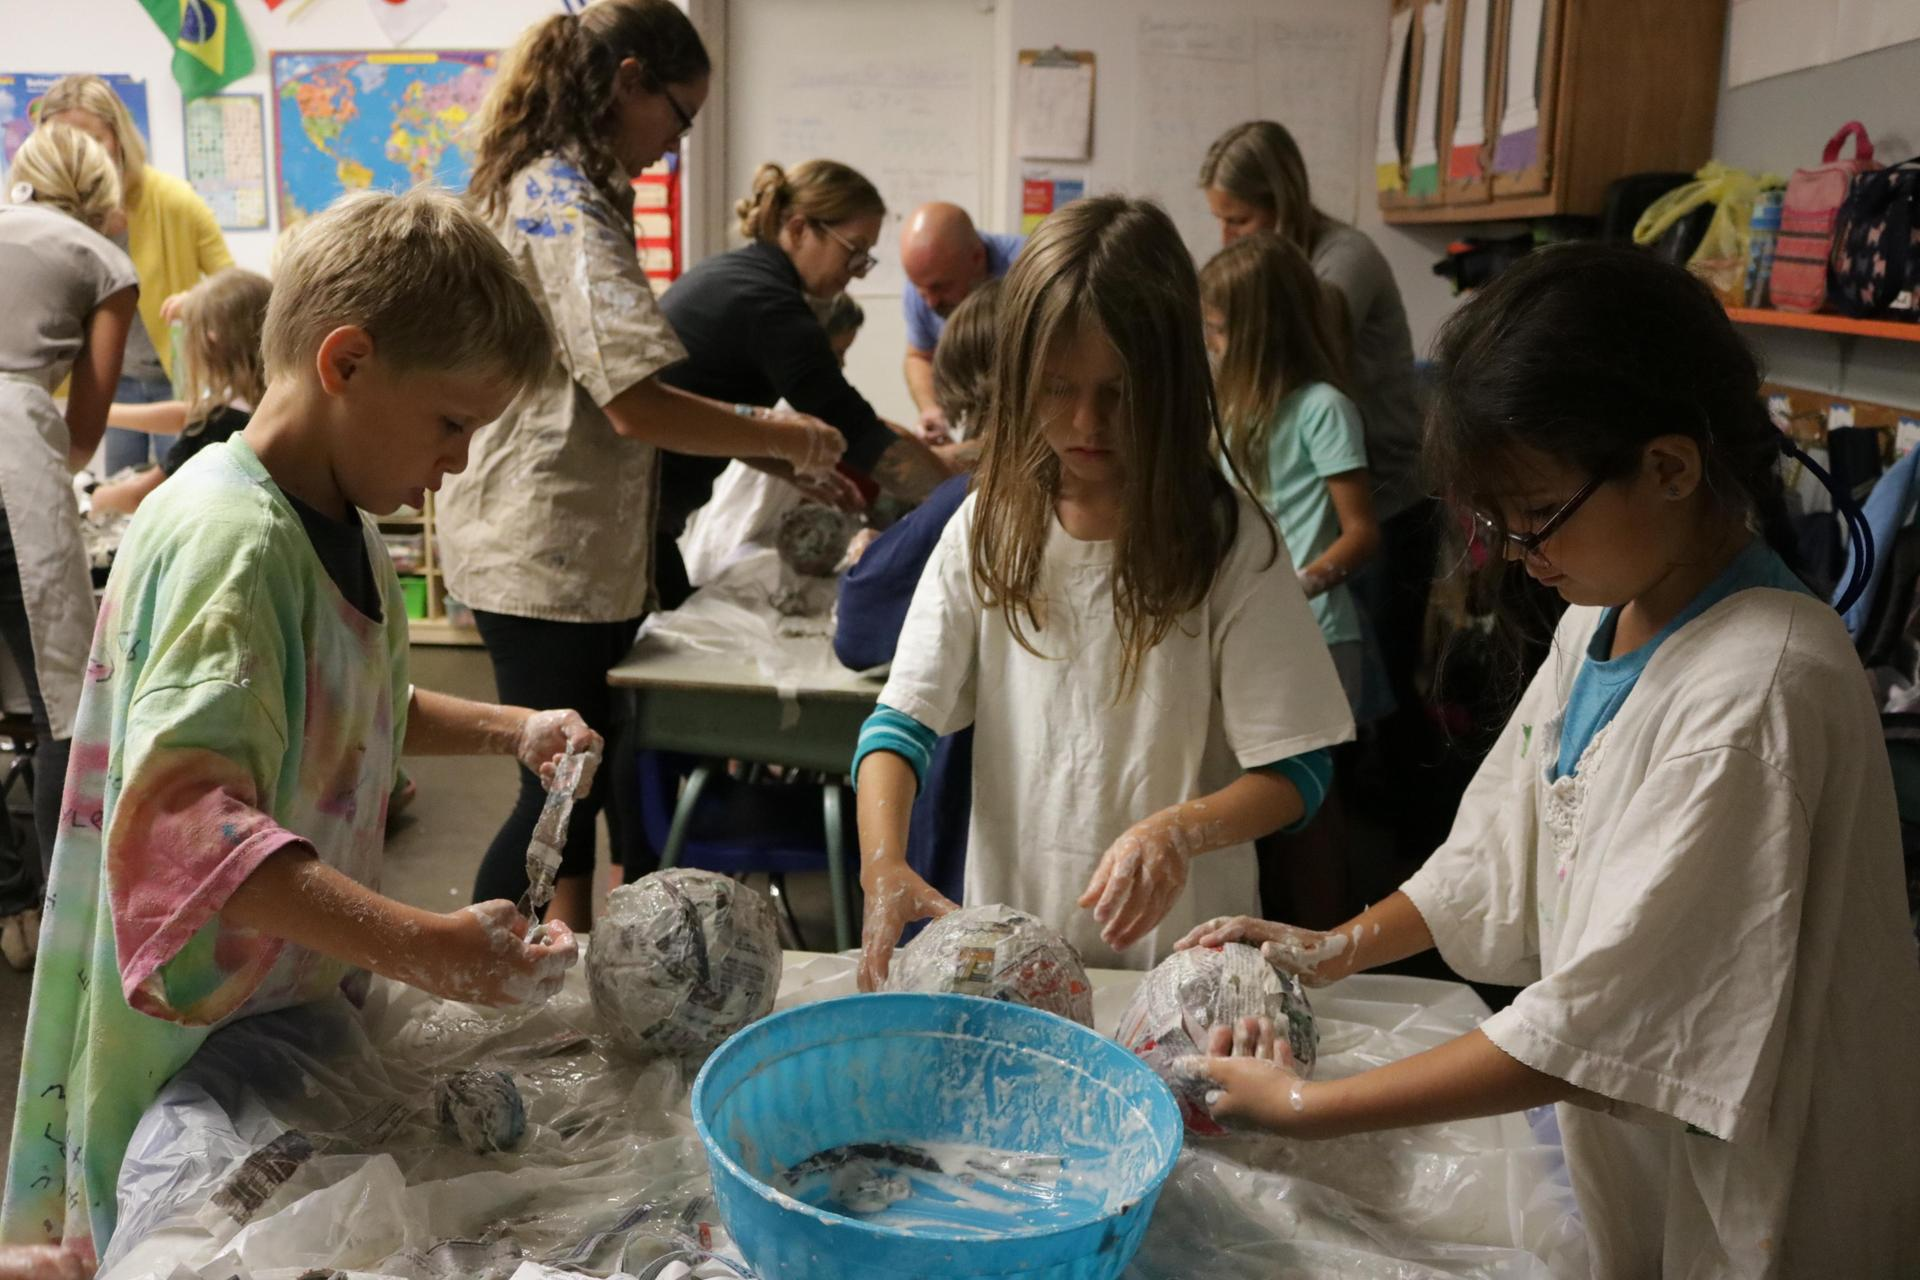 Students work together on a paper mache project